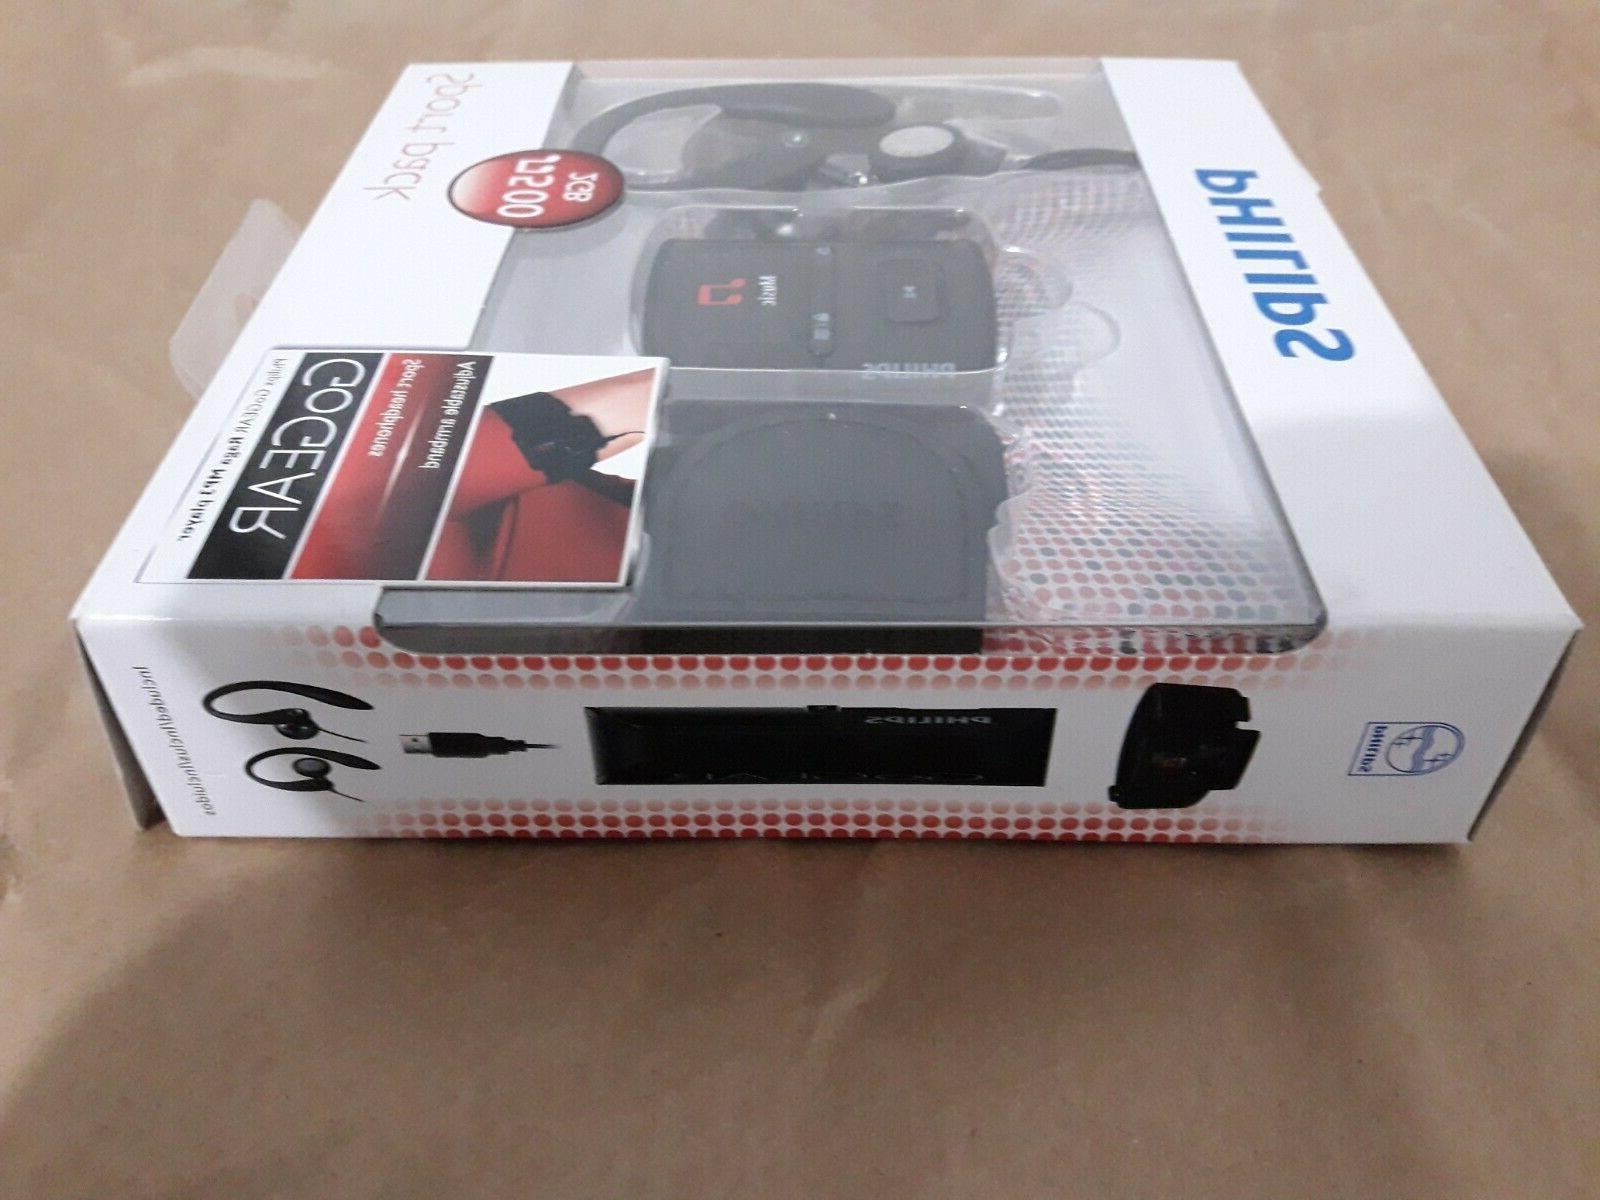 Philips GoGear Raga MP3 Player Unopened Sealed